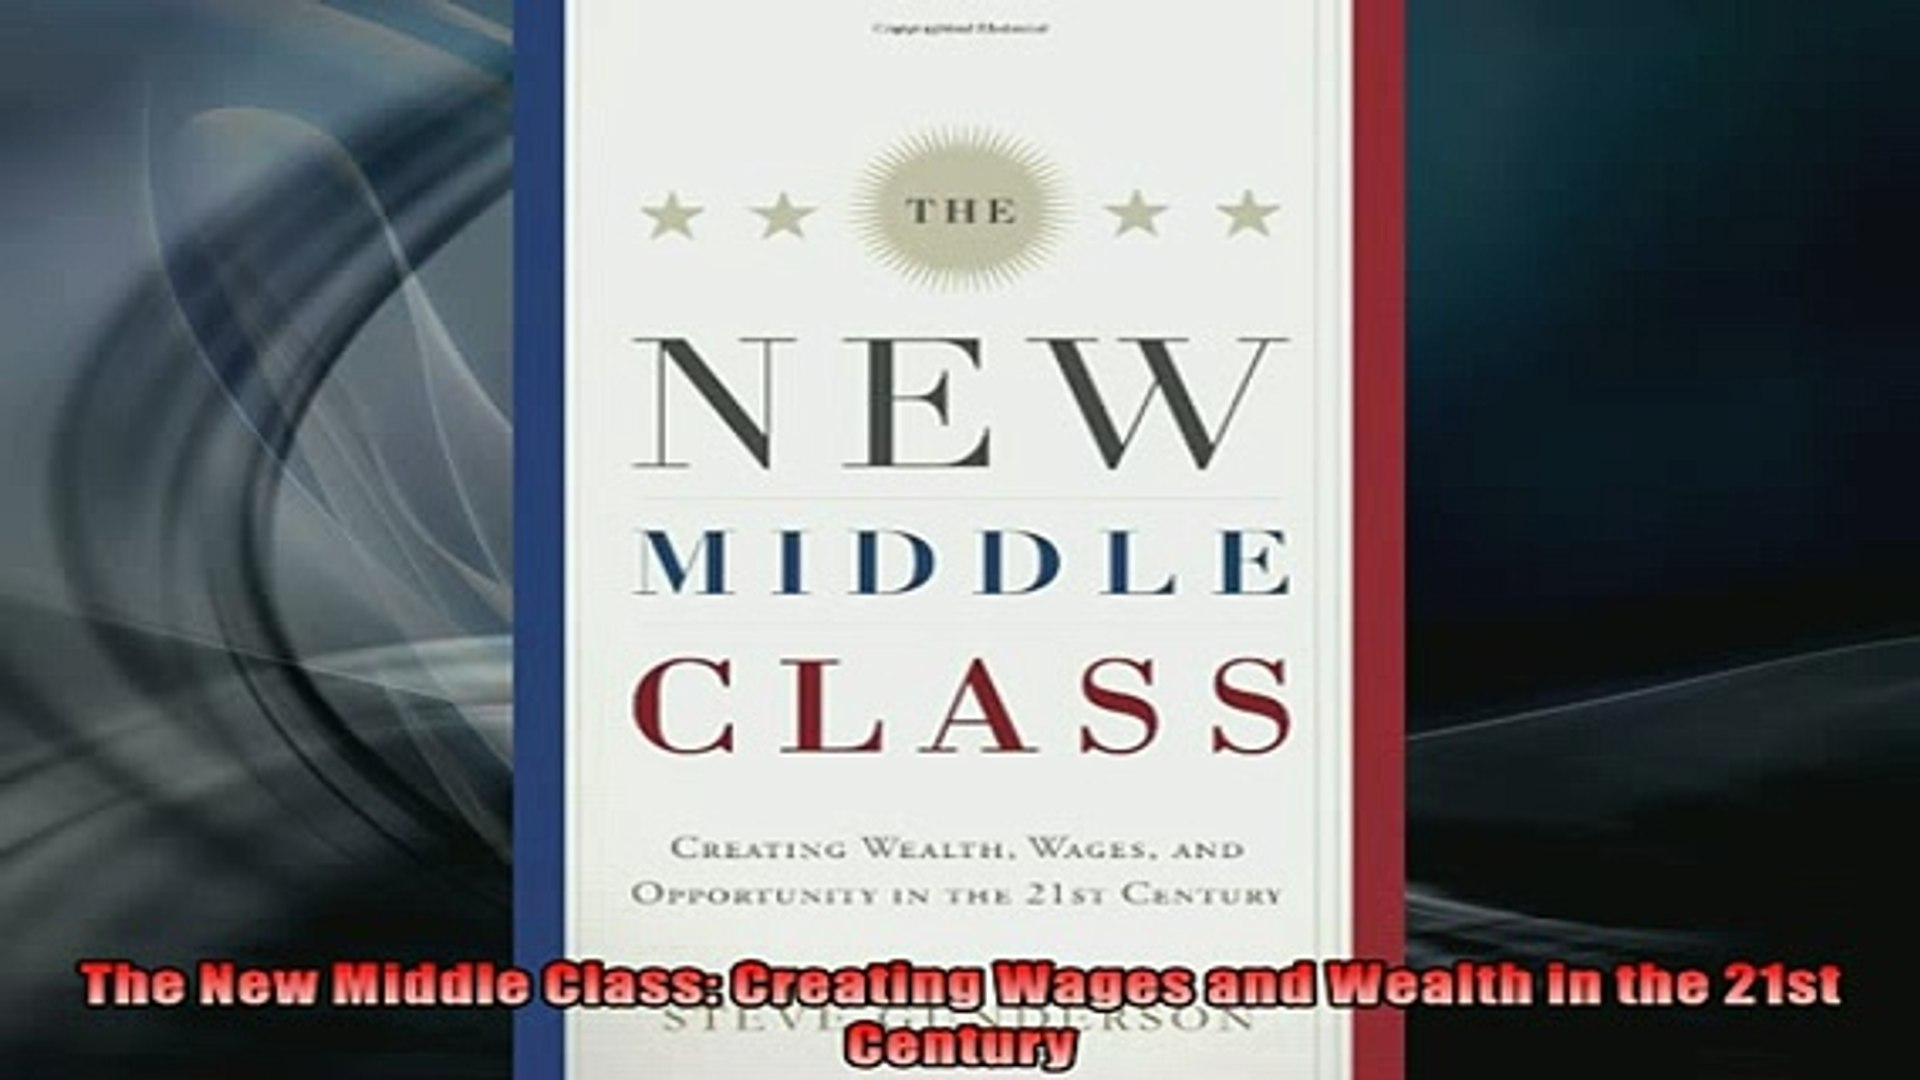 The New Middle Class: Creating Wages, Wealth, and Opportunity in the 21st Century